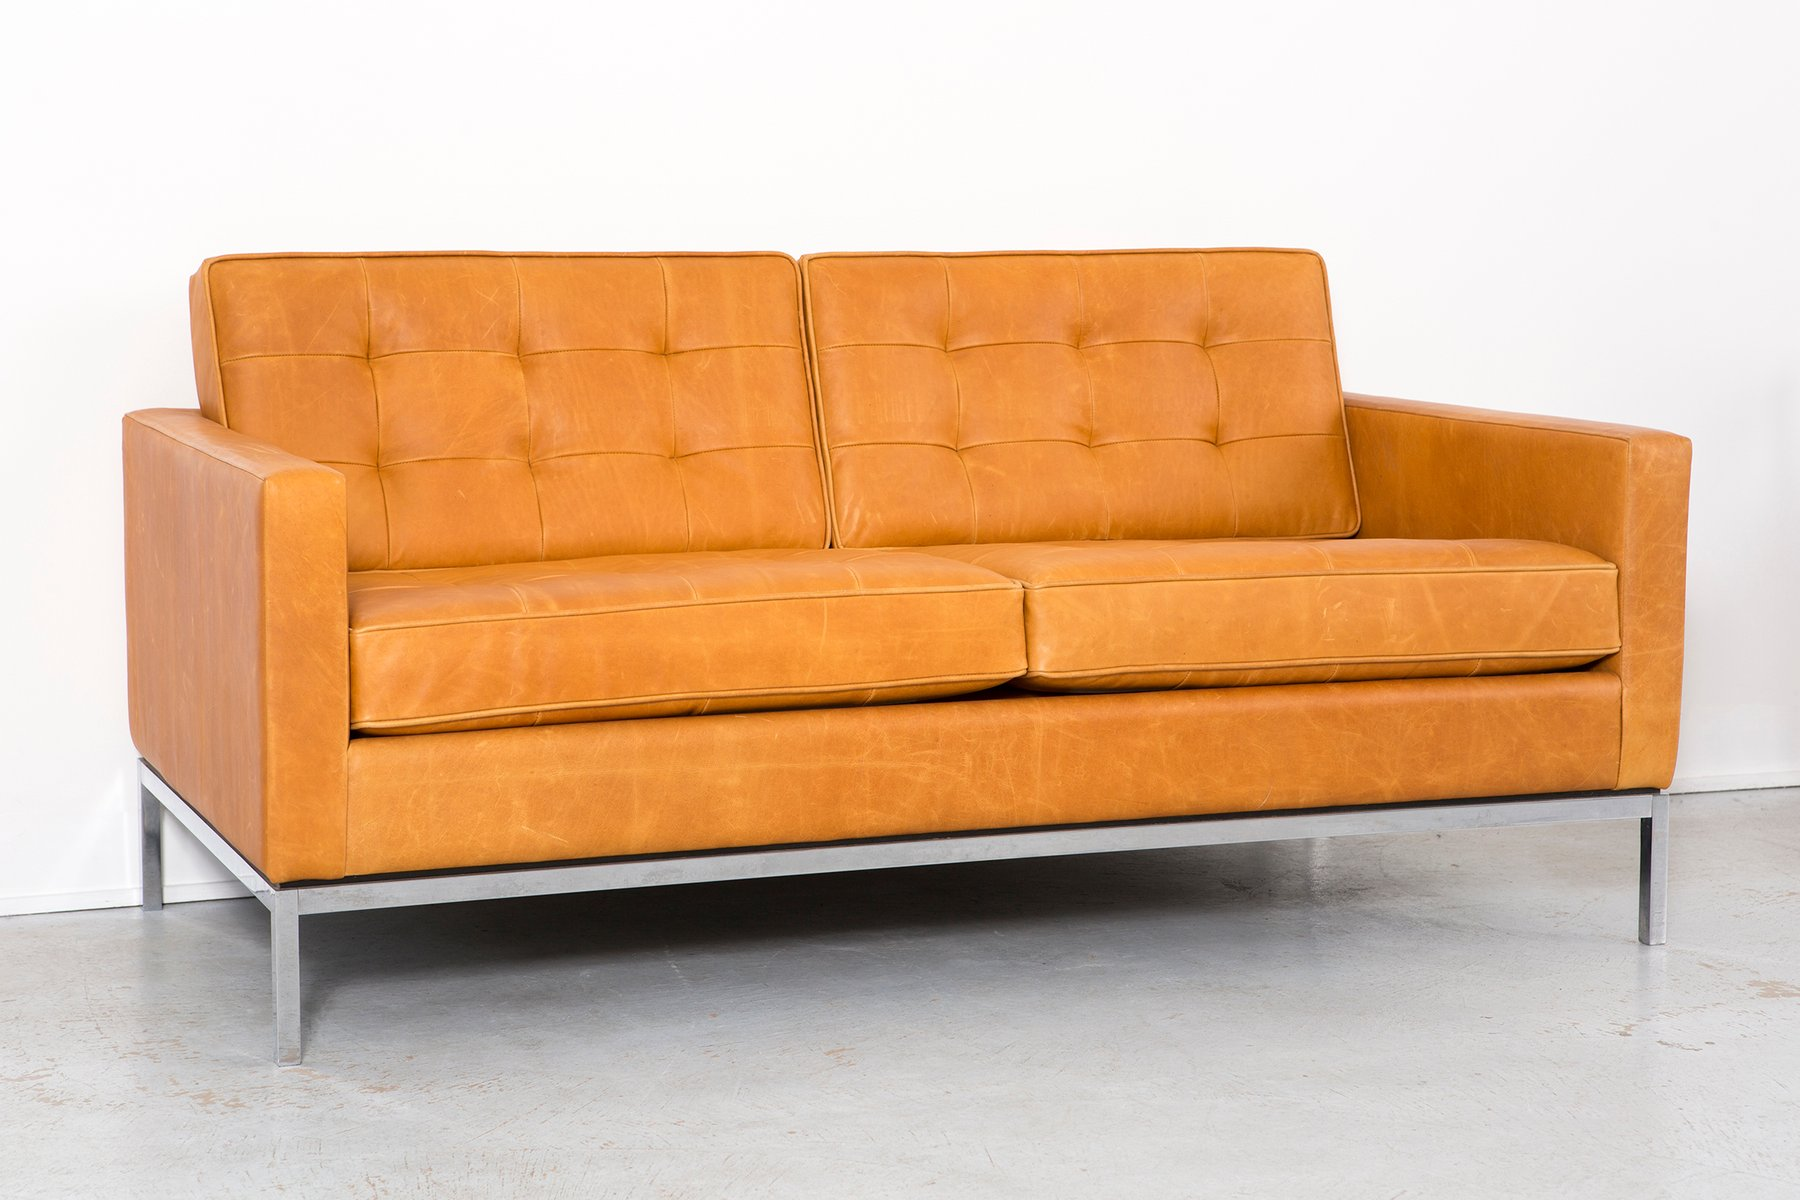 Leather Sofa by Florence Knoll Bassett for Knoll 1970s for sale